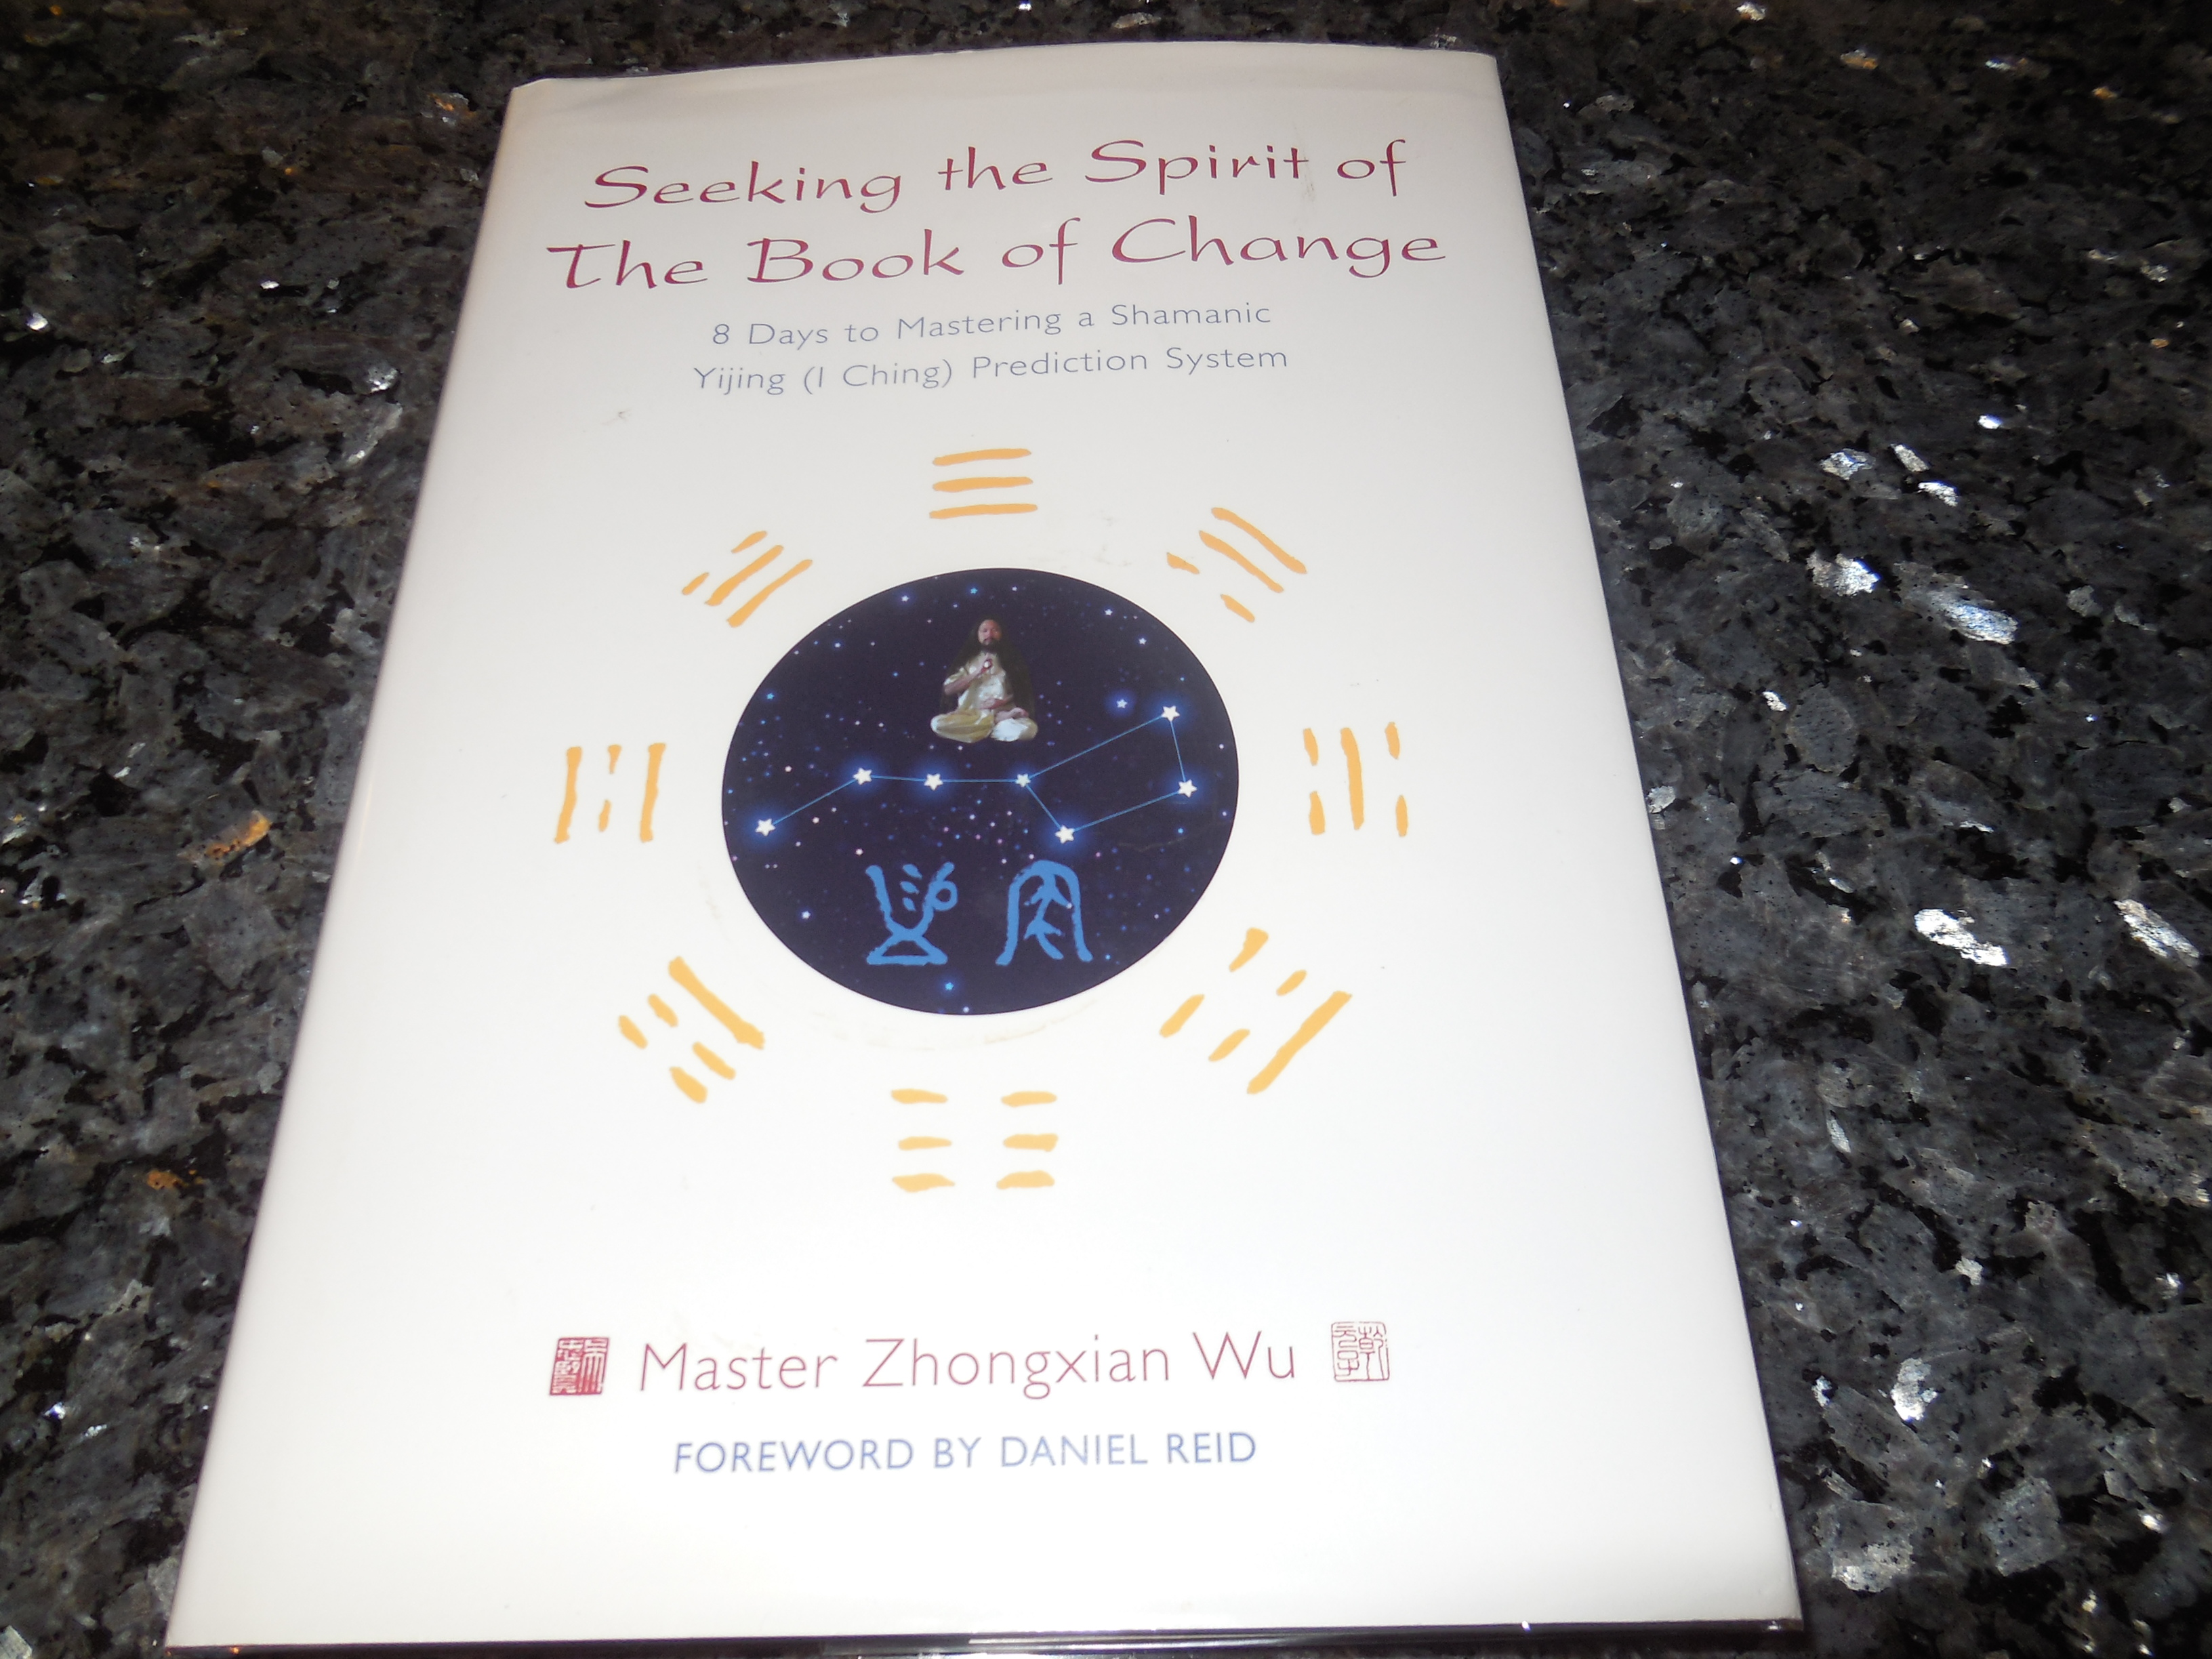 Image for Seeking the Spirit of The Book of Change: 8 Days to Mastering a Shamanic Yijing (I Ching) Prediction System